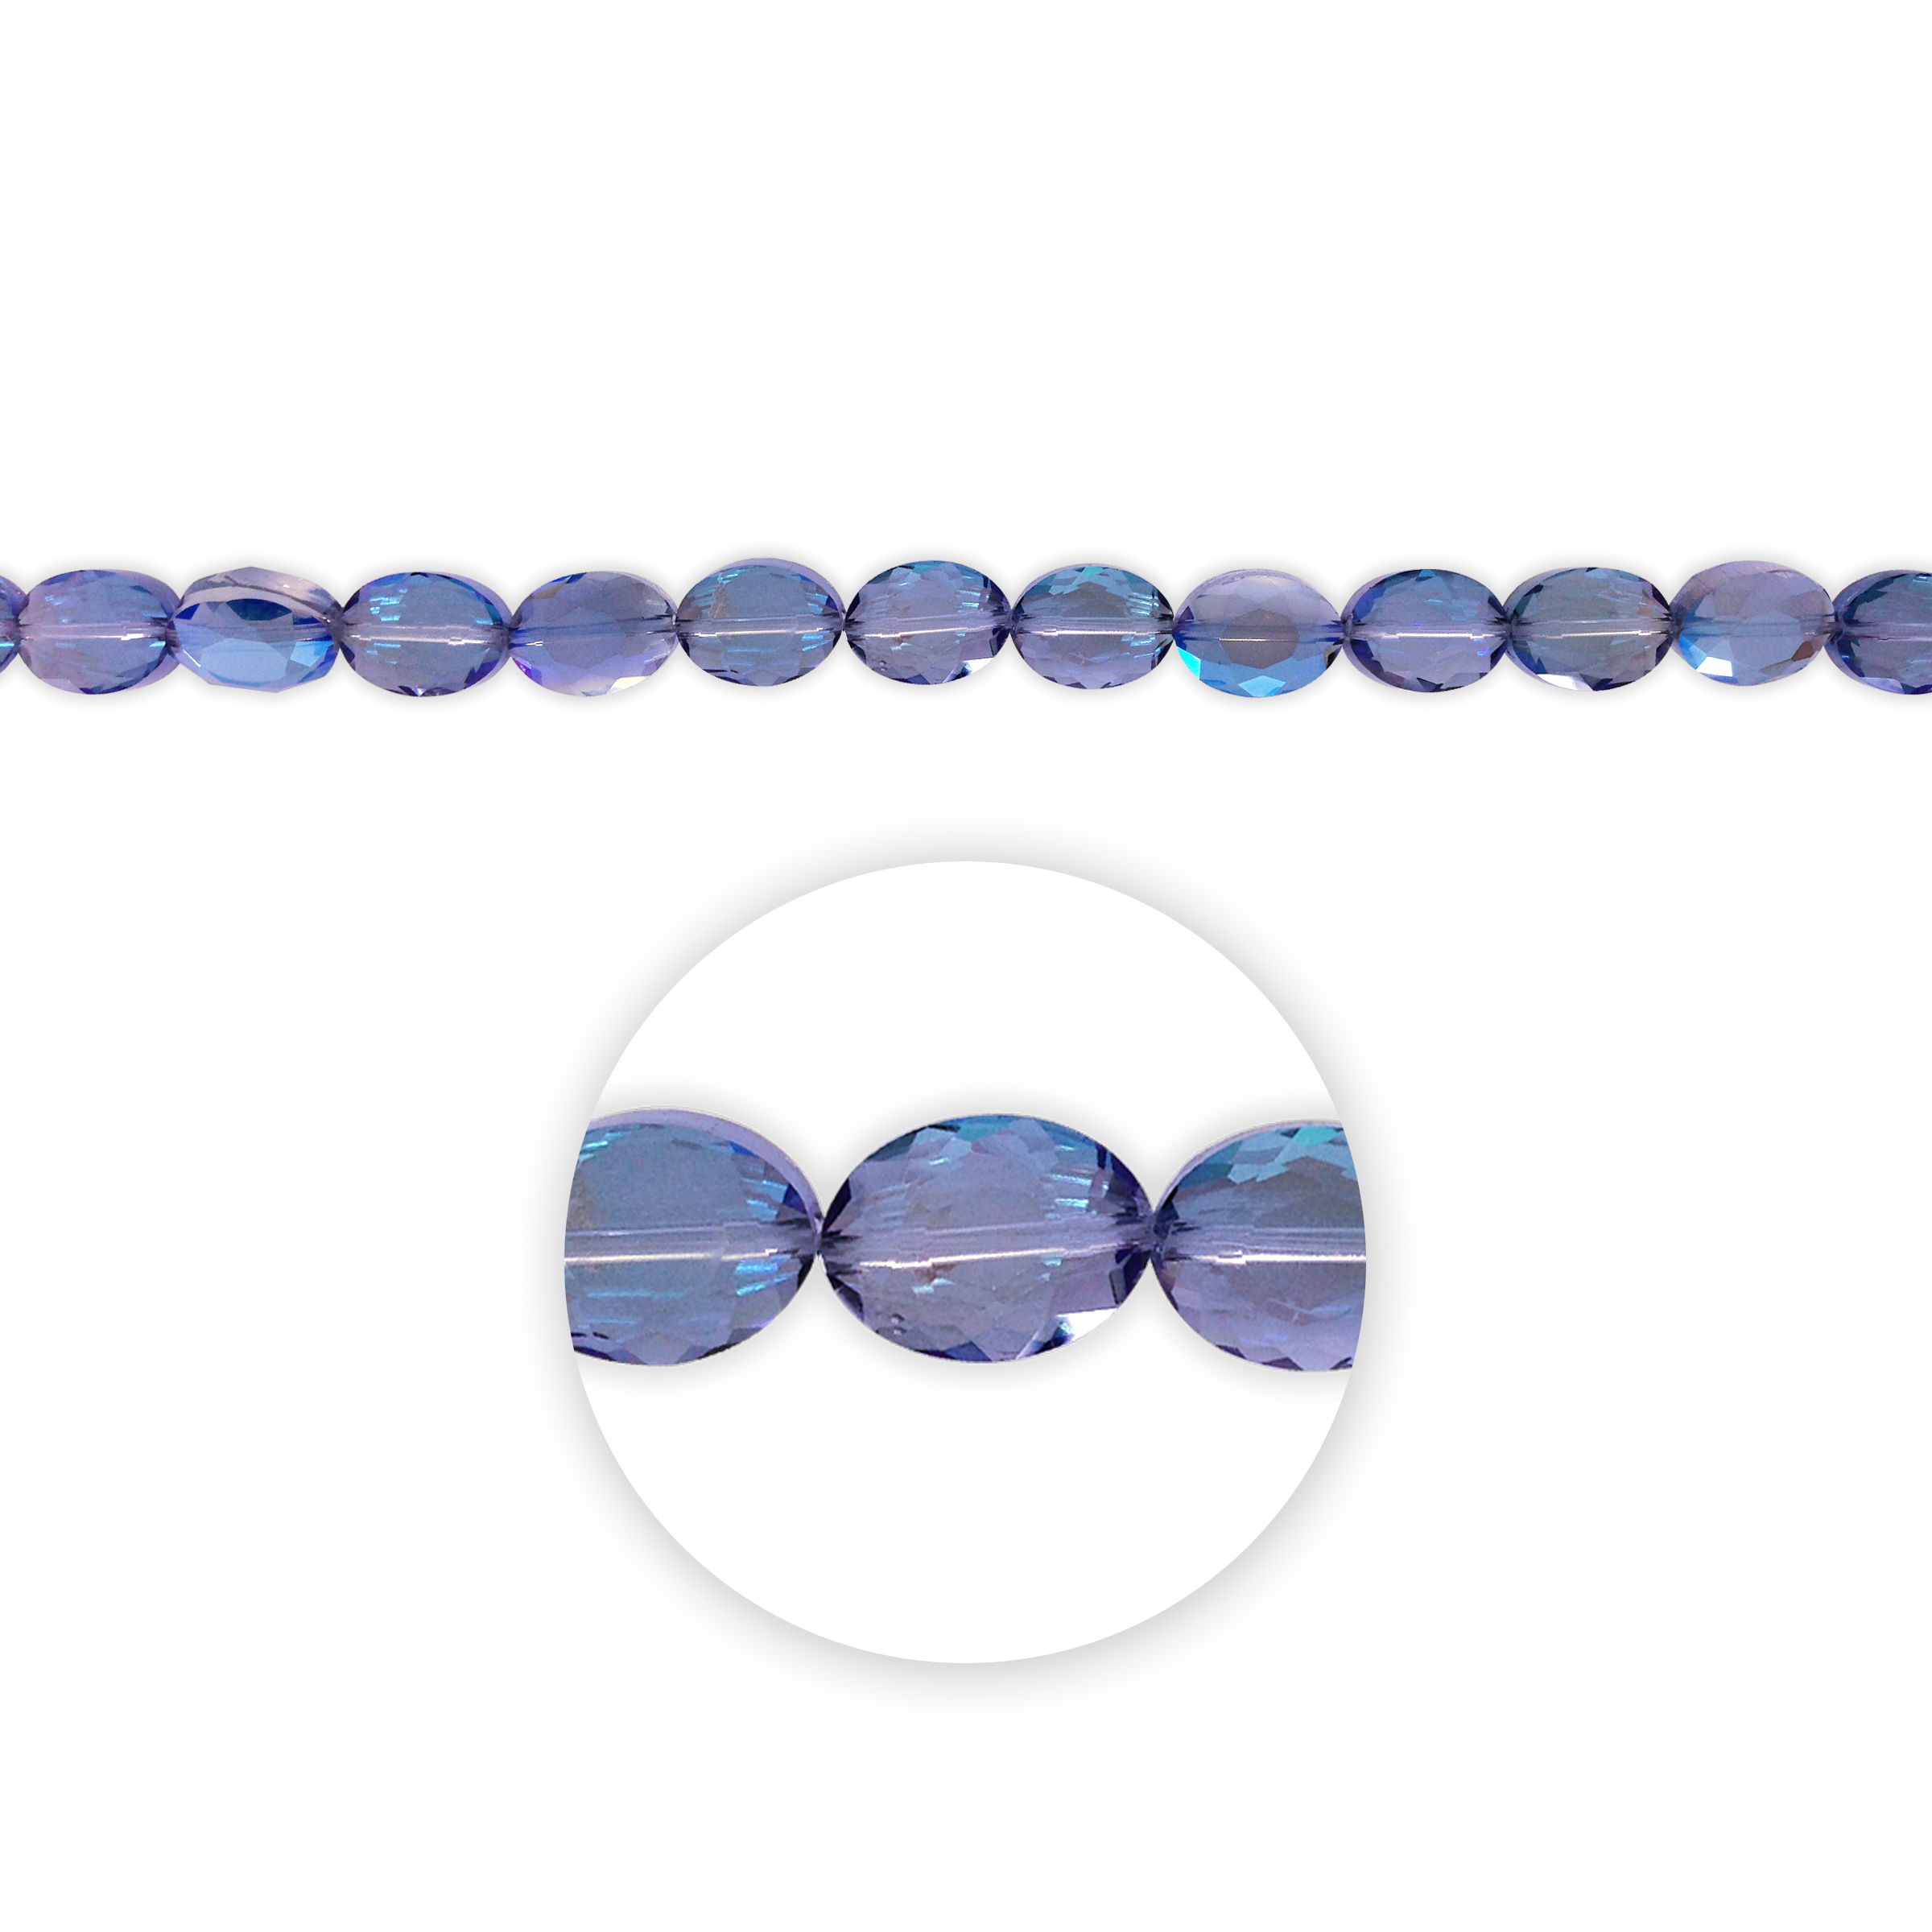 Blue Moon Beads 7\u0022 Crystal Strand, Flat Oval, Smoky Blue AB